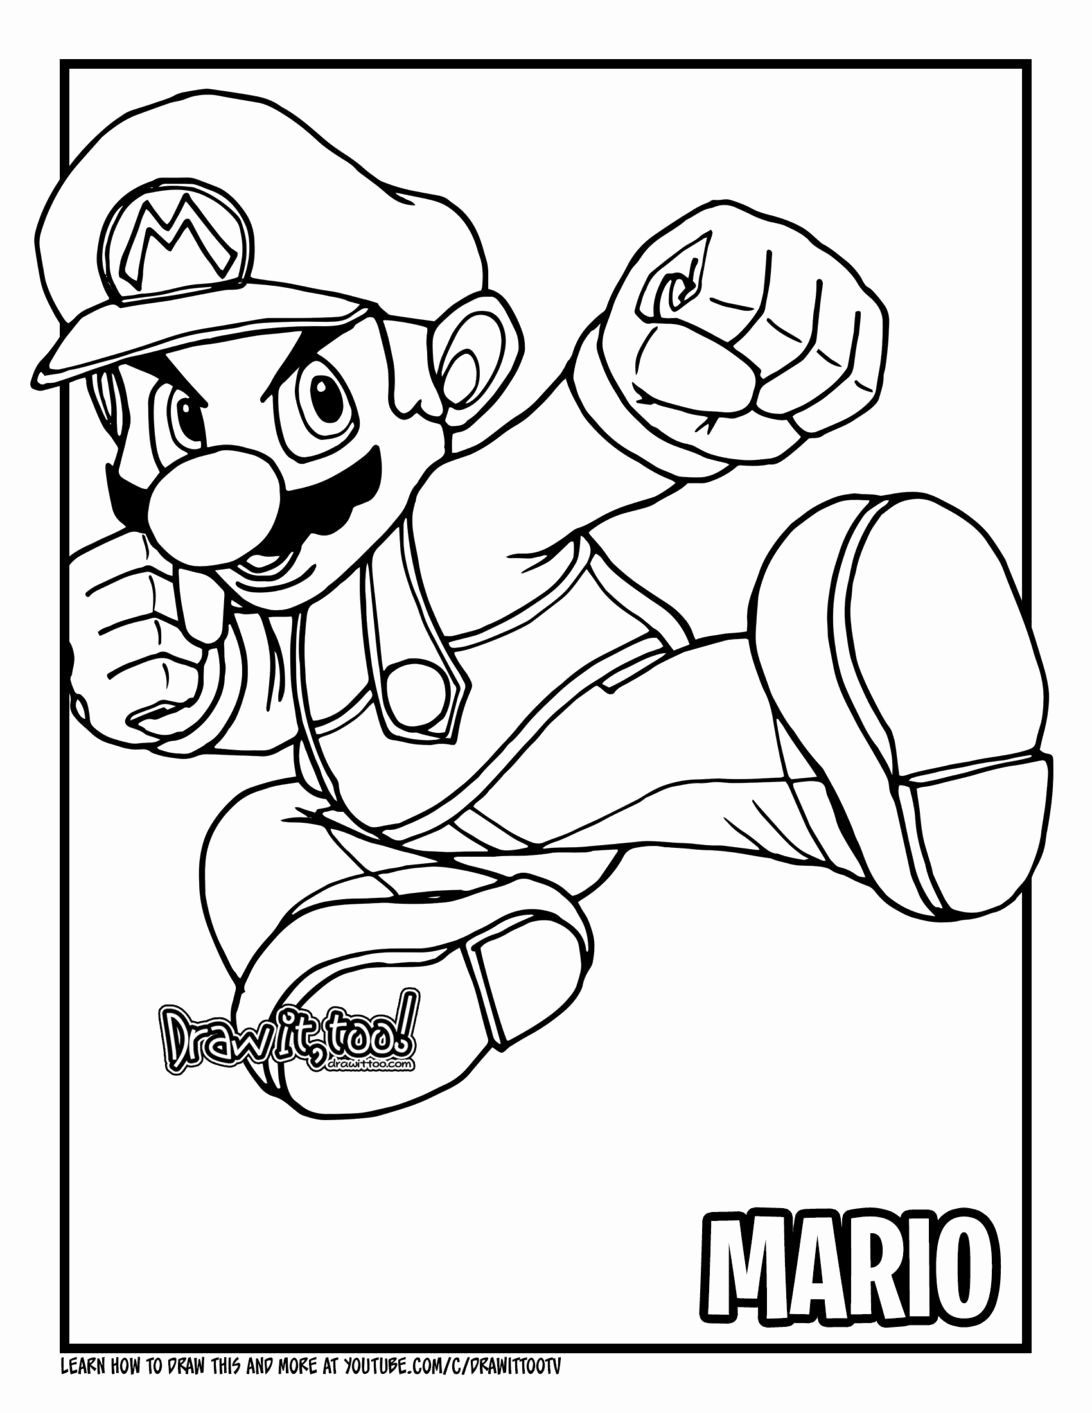 Super Mario Coloring Pages Inspirational Coloring Book Most Marvelous Super Mario Brosng In 2020 Super Mario Coloring Pages Cartoon Coloring Pages Mario Coloring Pages